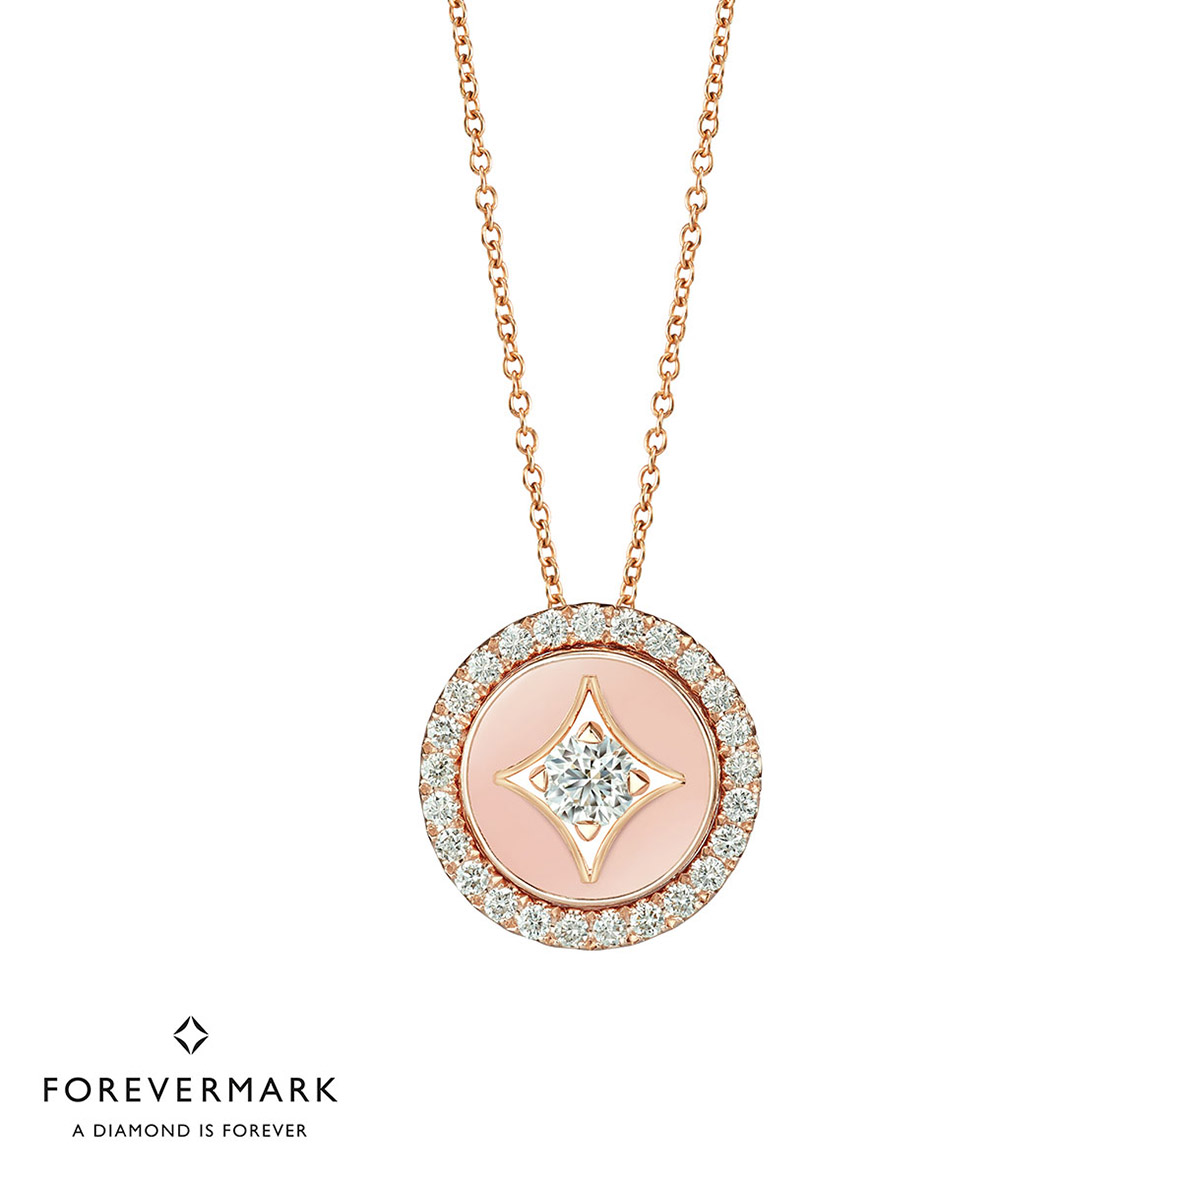 FM Bliss necklace - RG 1